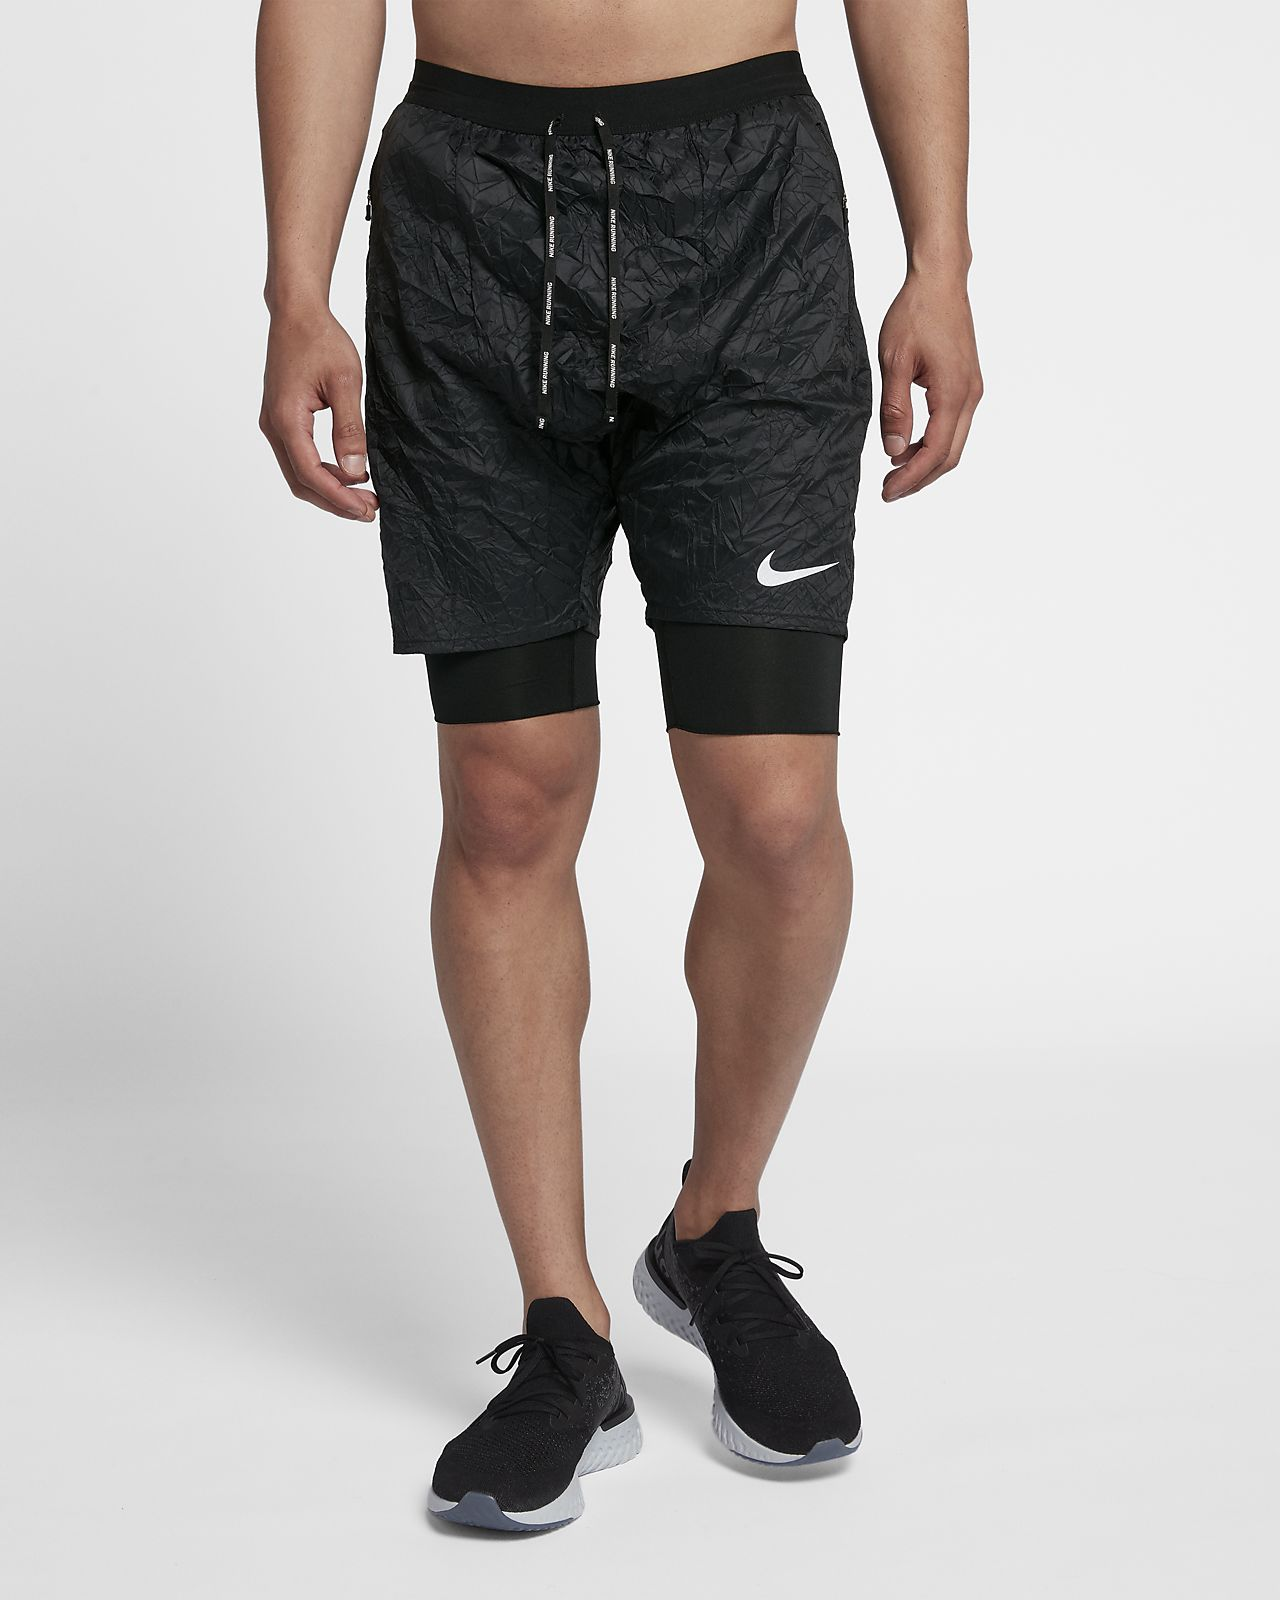 En Flex Run De Short Nike 2 Running Elevate 1 Pour Stride Division YYrF0x